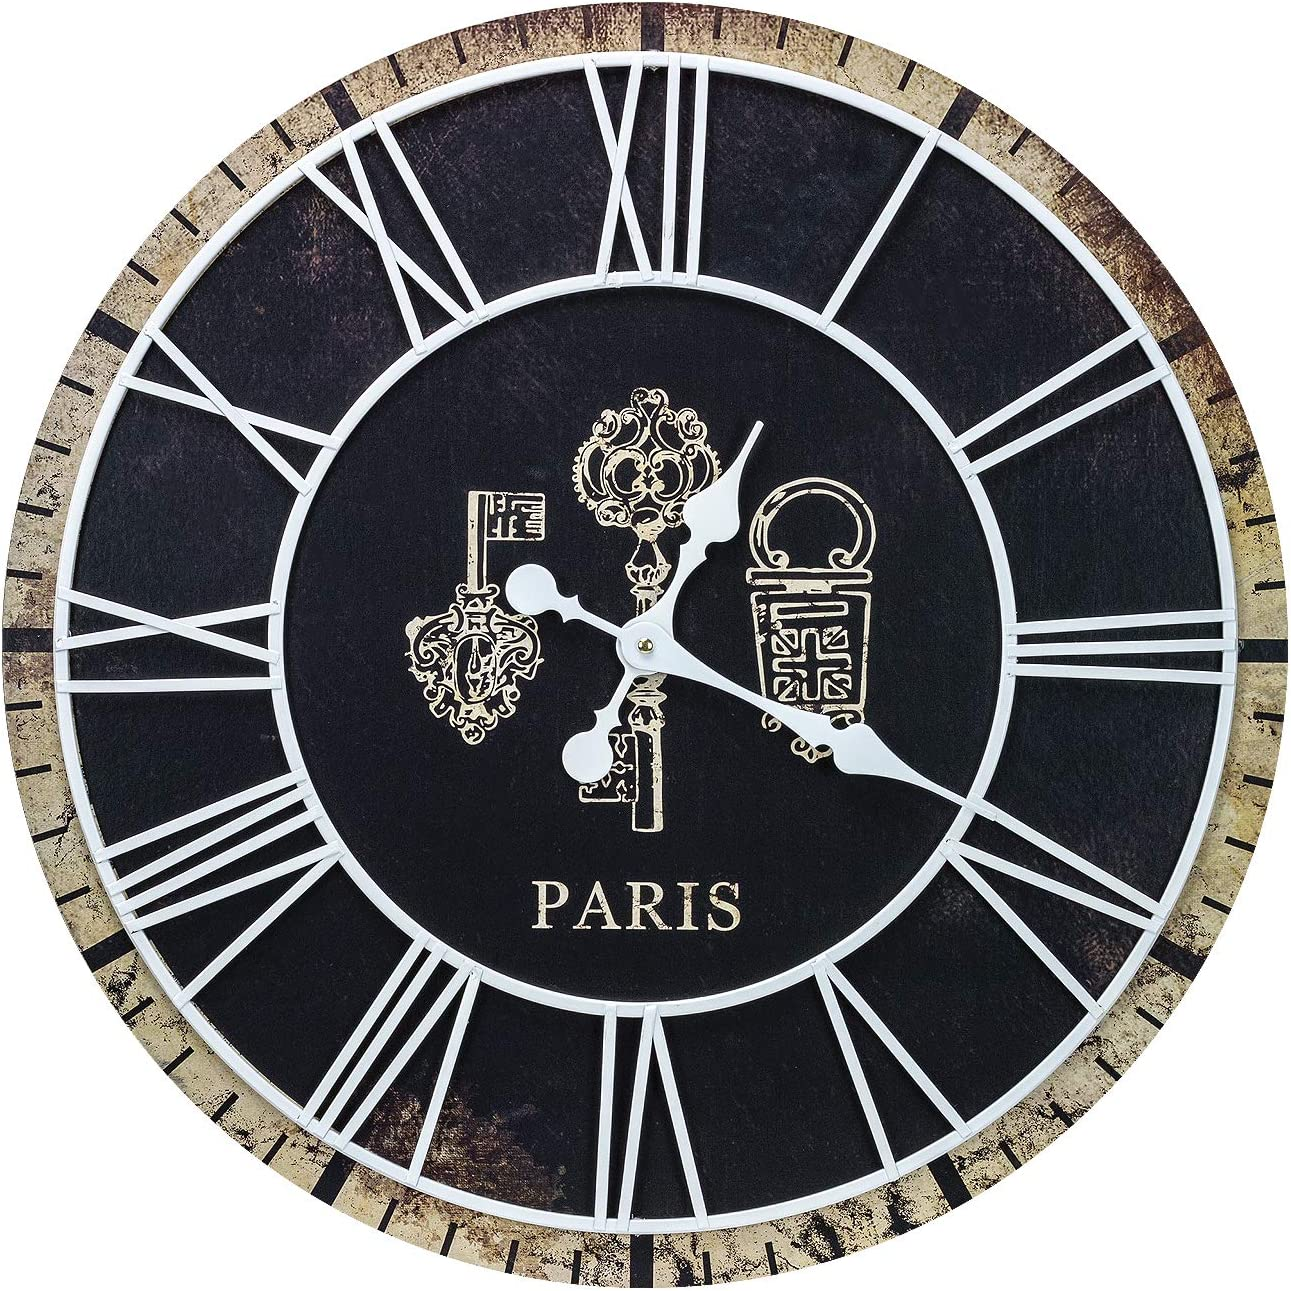 Sorbus Large Decorative Paris Wall Clock, 24 Round Centurion Roman Numeral Hands, Parisian French Country Rustic Modern Black Farmhouse Decor, Analog Wood Metal Clock